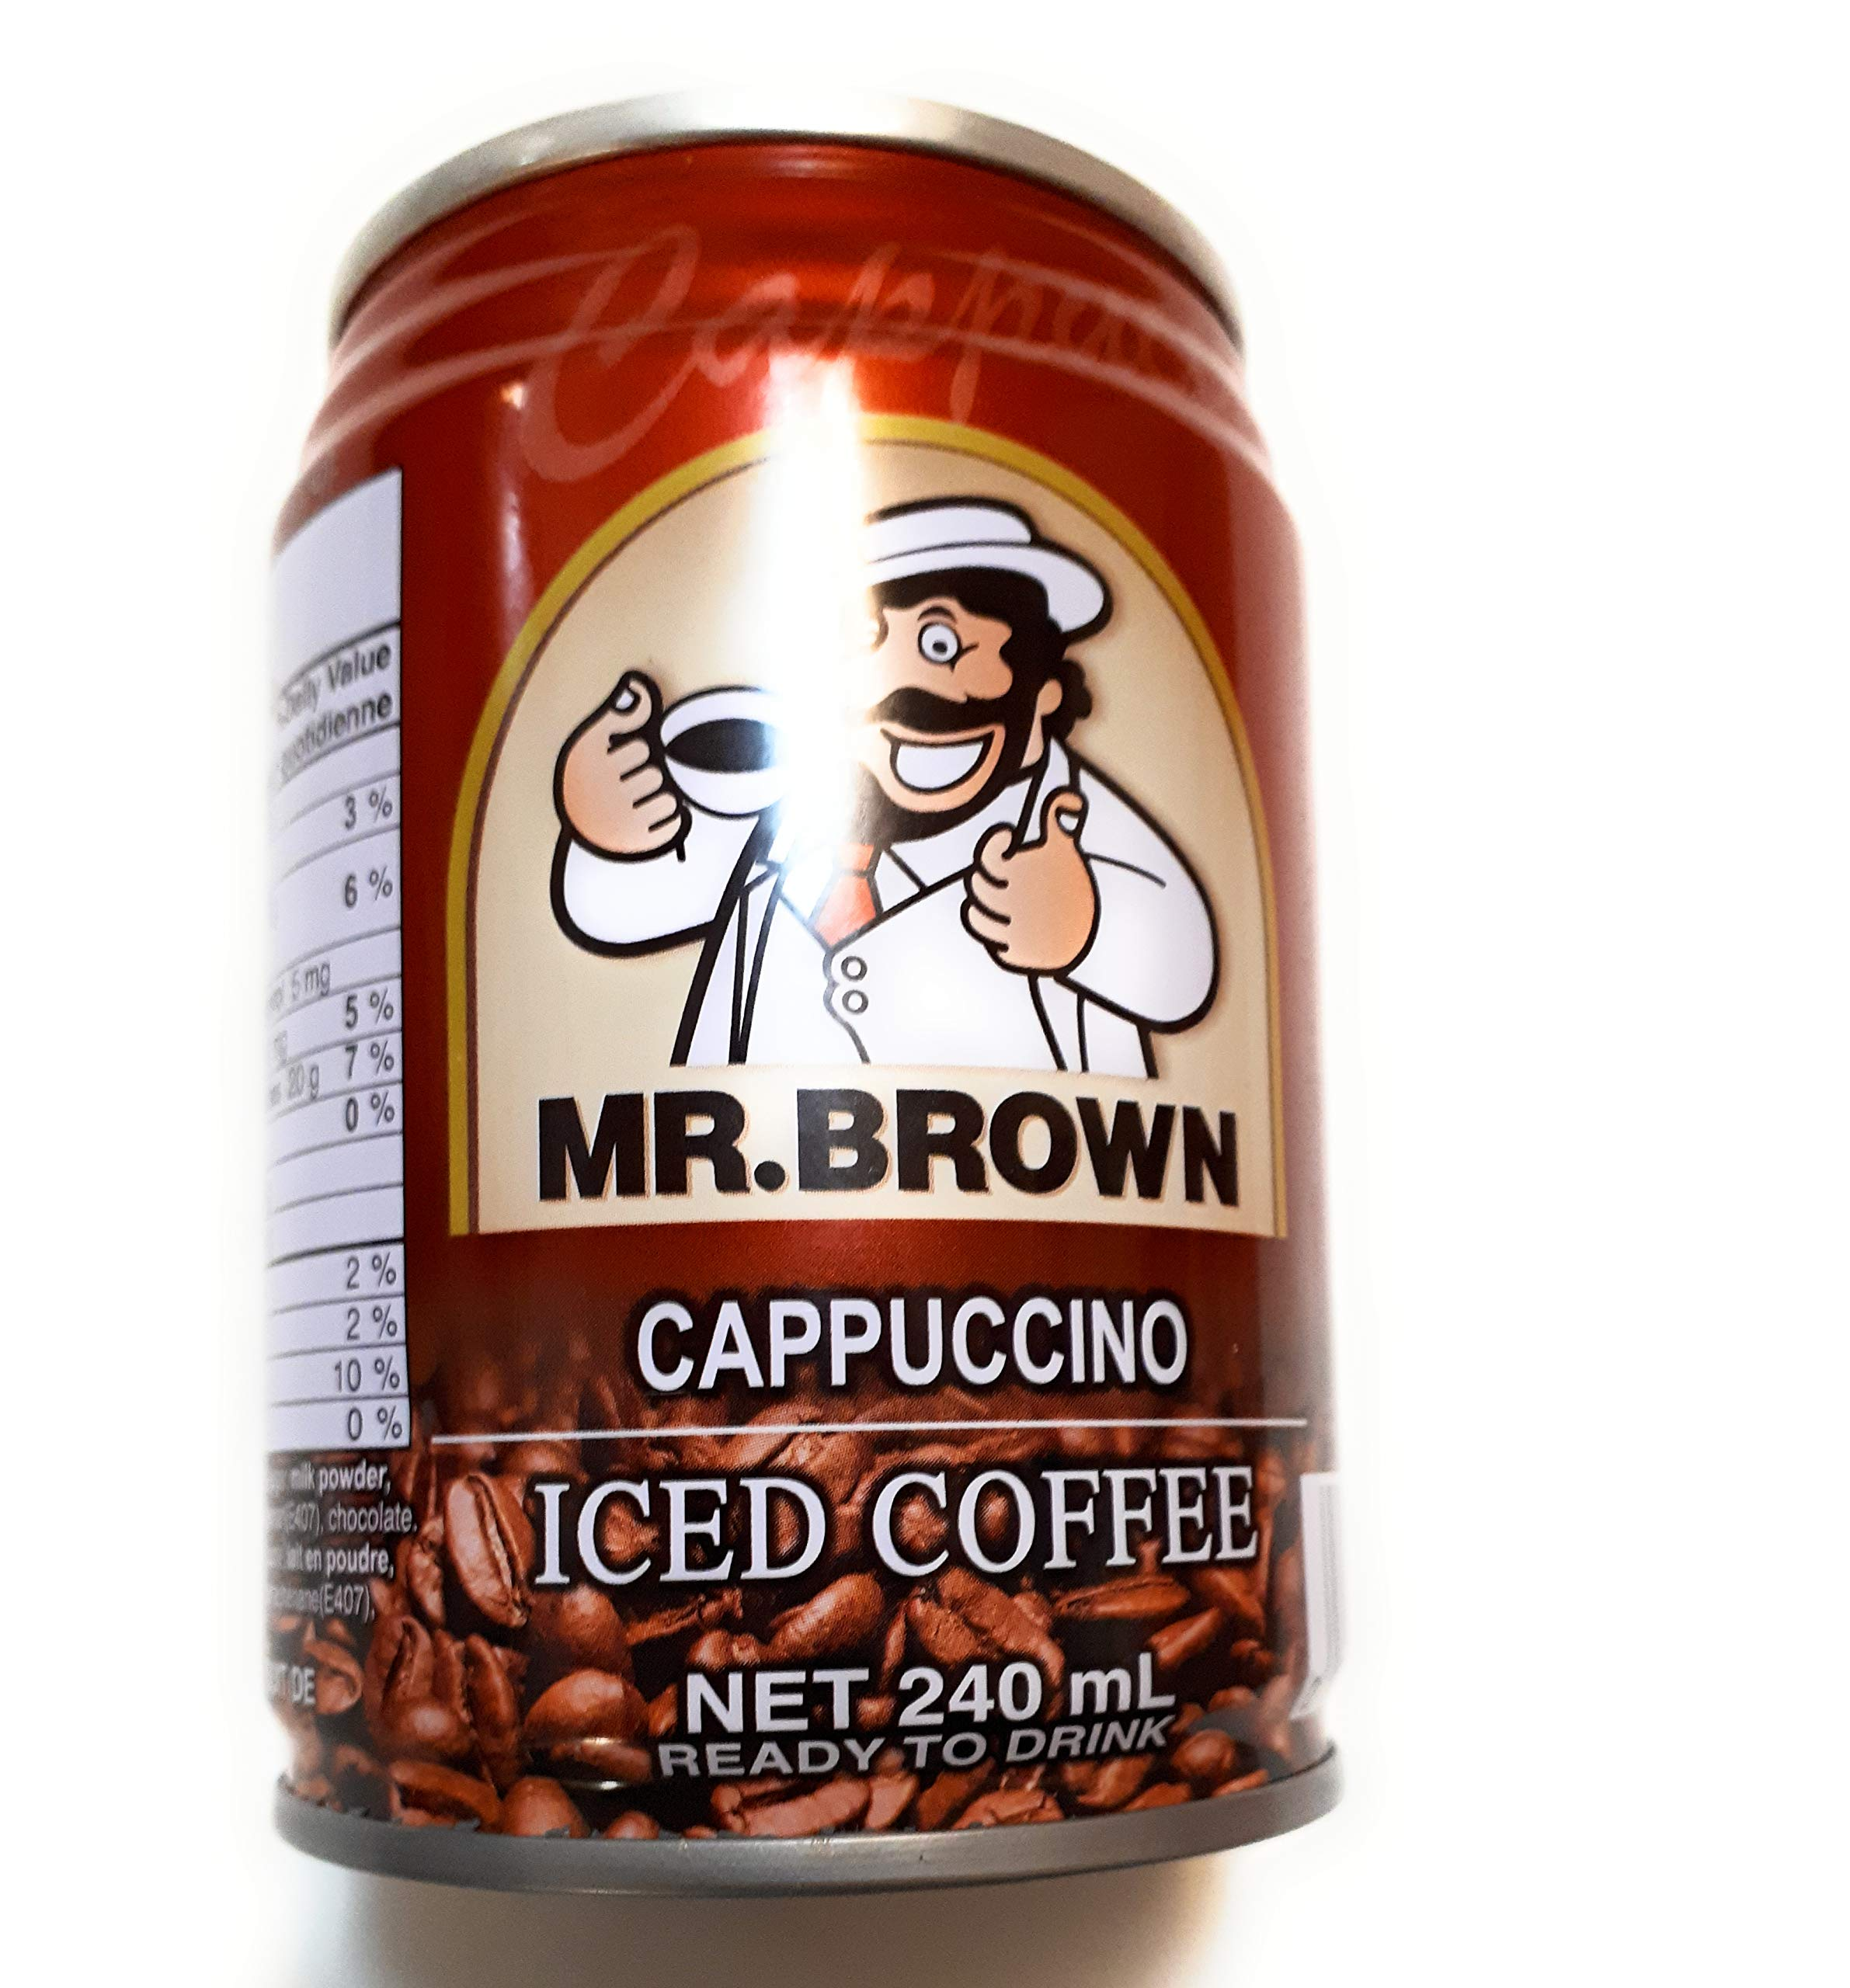 Mr. Brown Iced Coffee (Cappuccino)